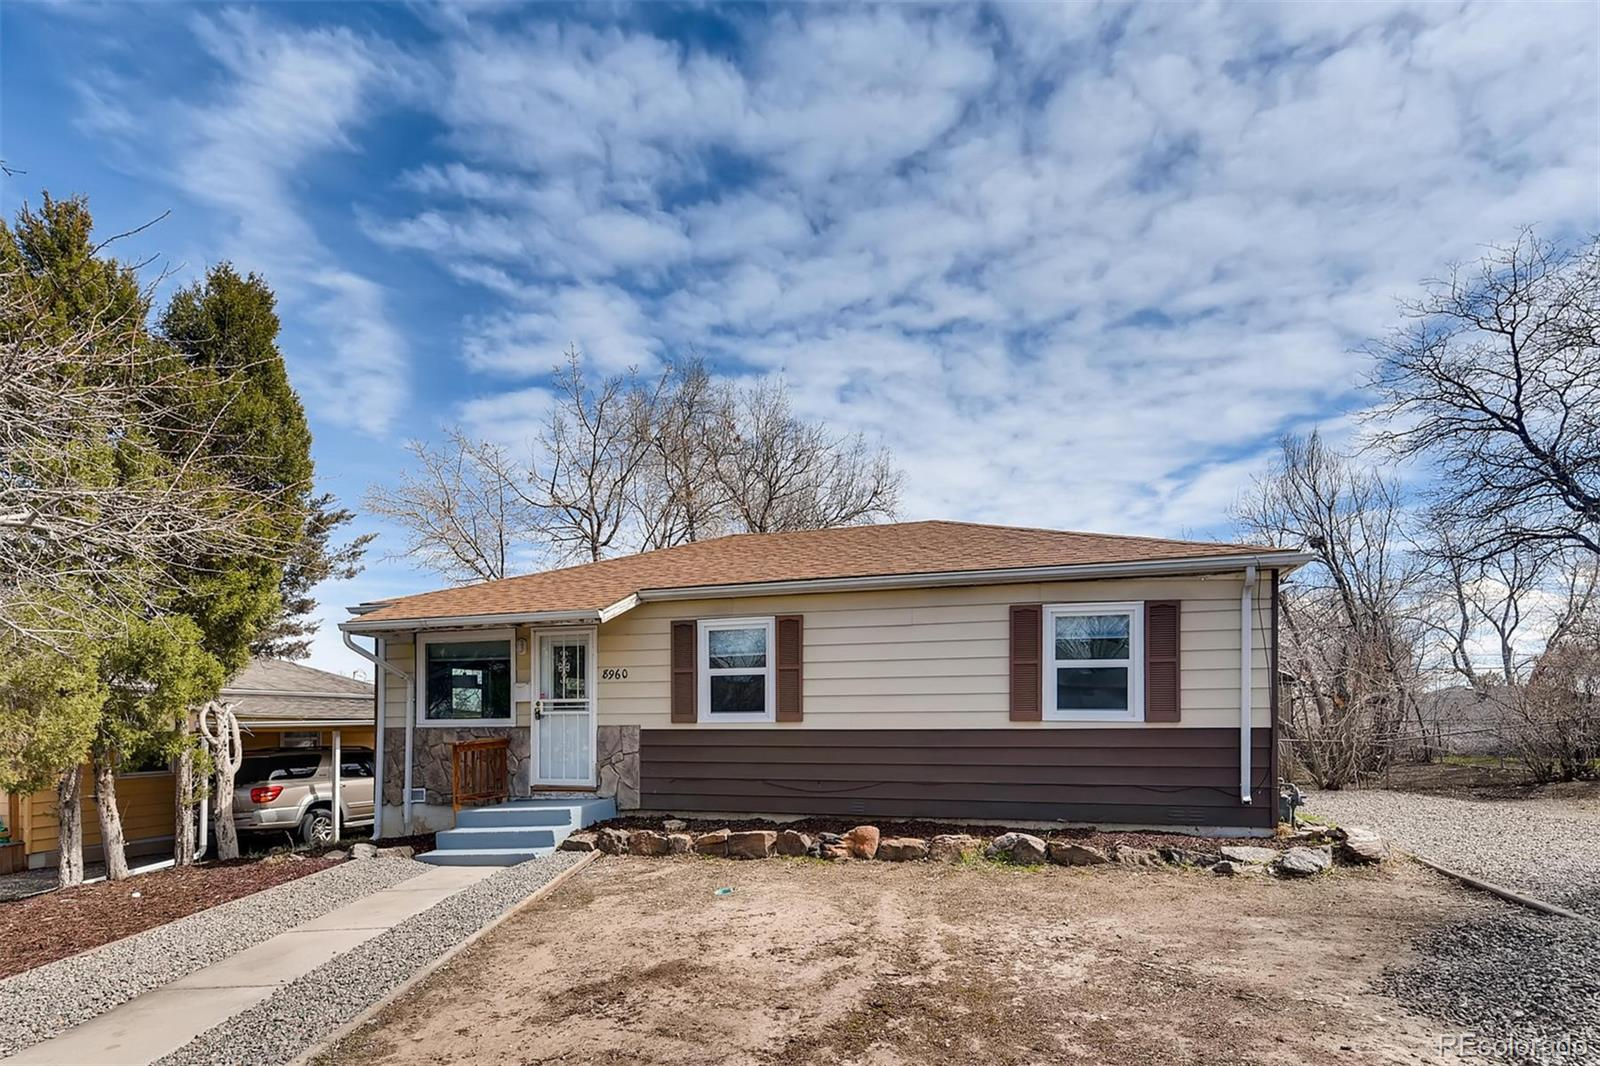 MLS# 9782894 - 1 - 8960 Utah Court, Thornton, CO 80229